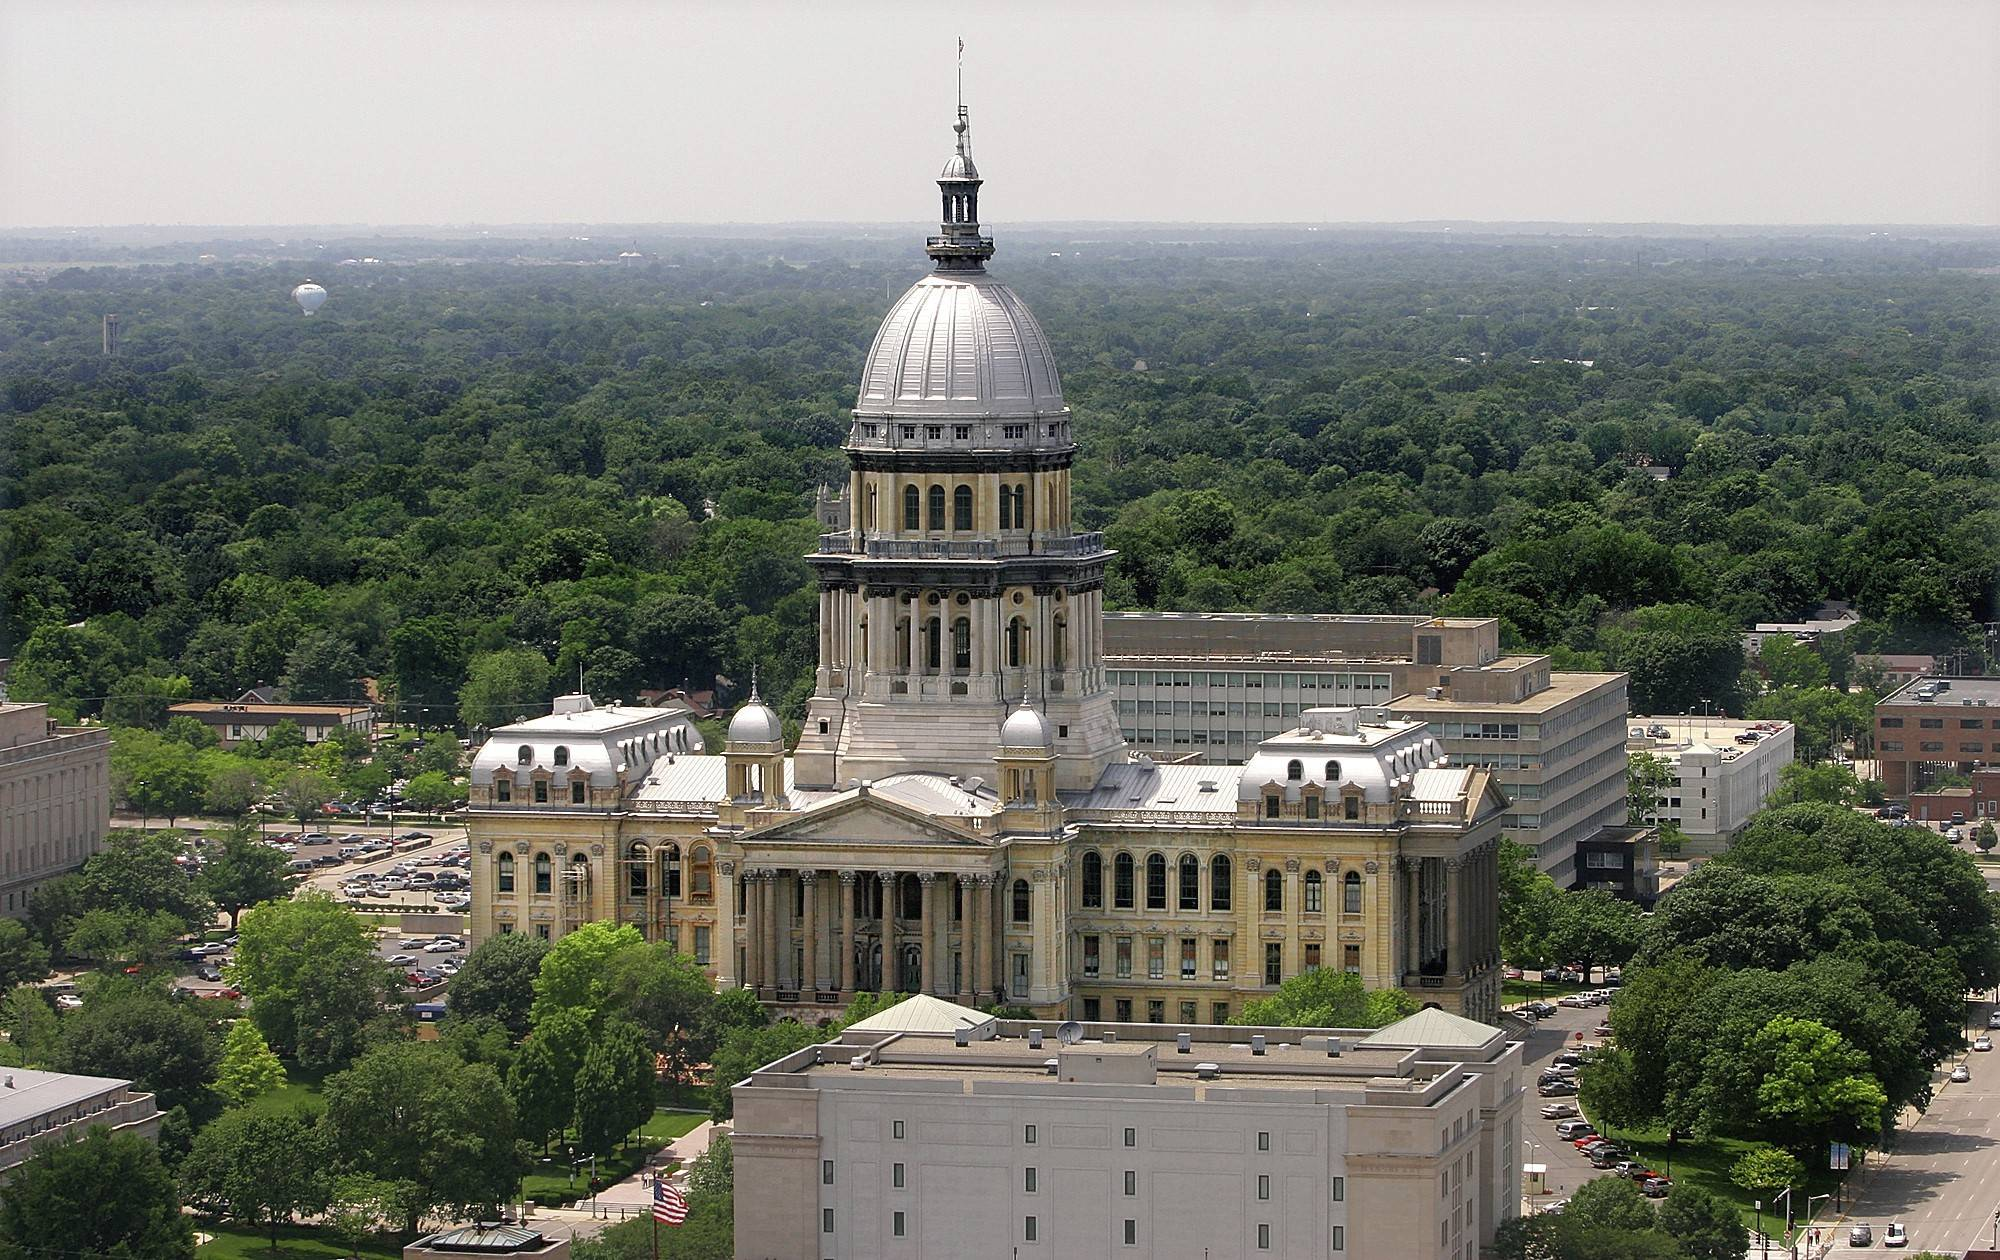 The Illinois House has voted in favor of an advisory referendum on raising the minimum wage.